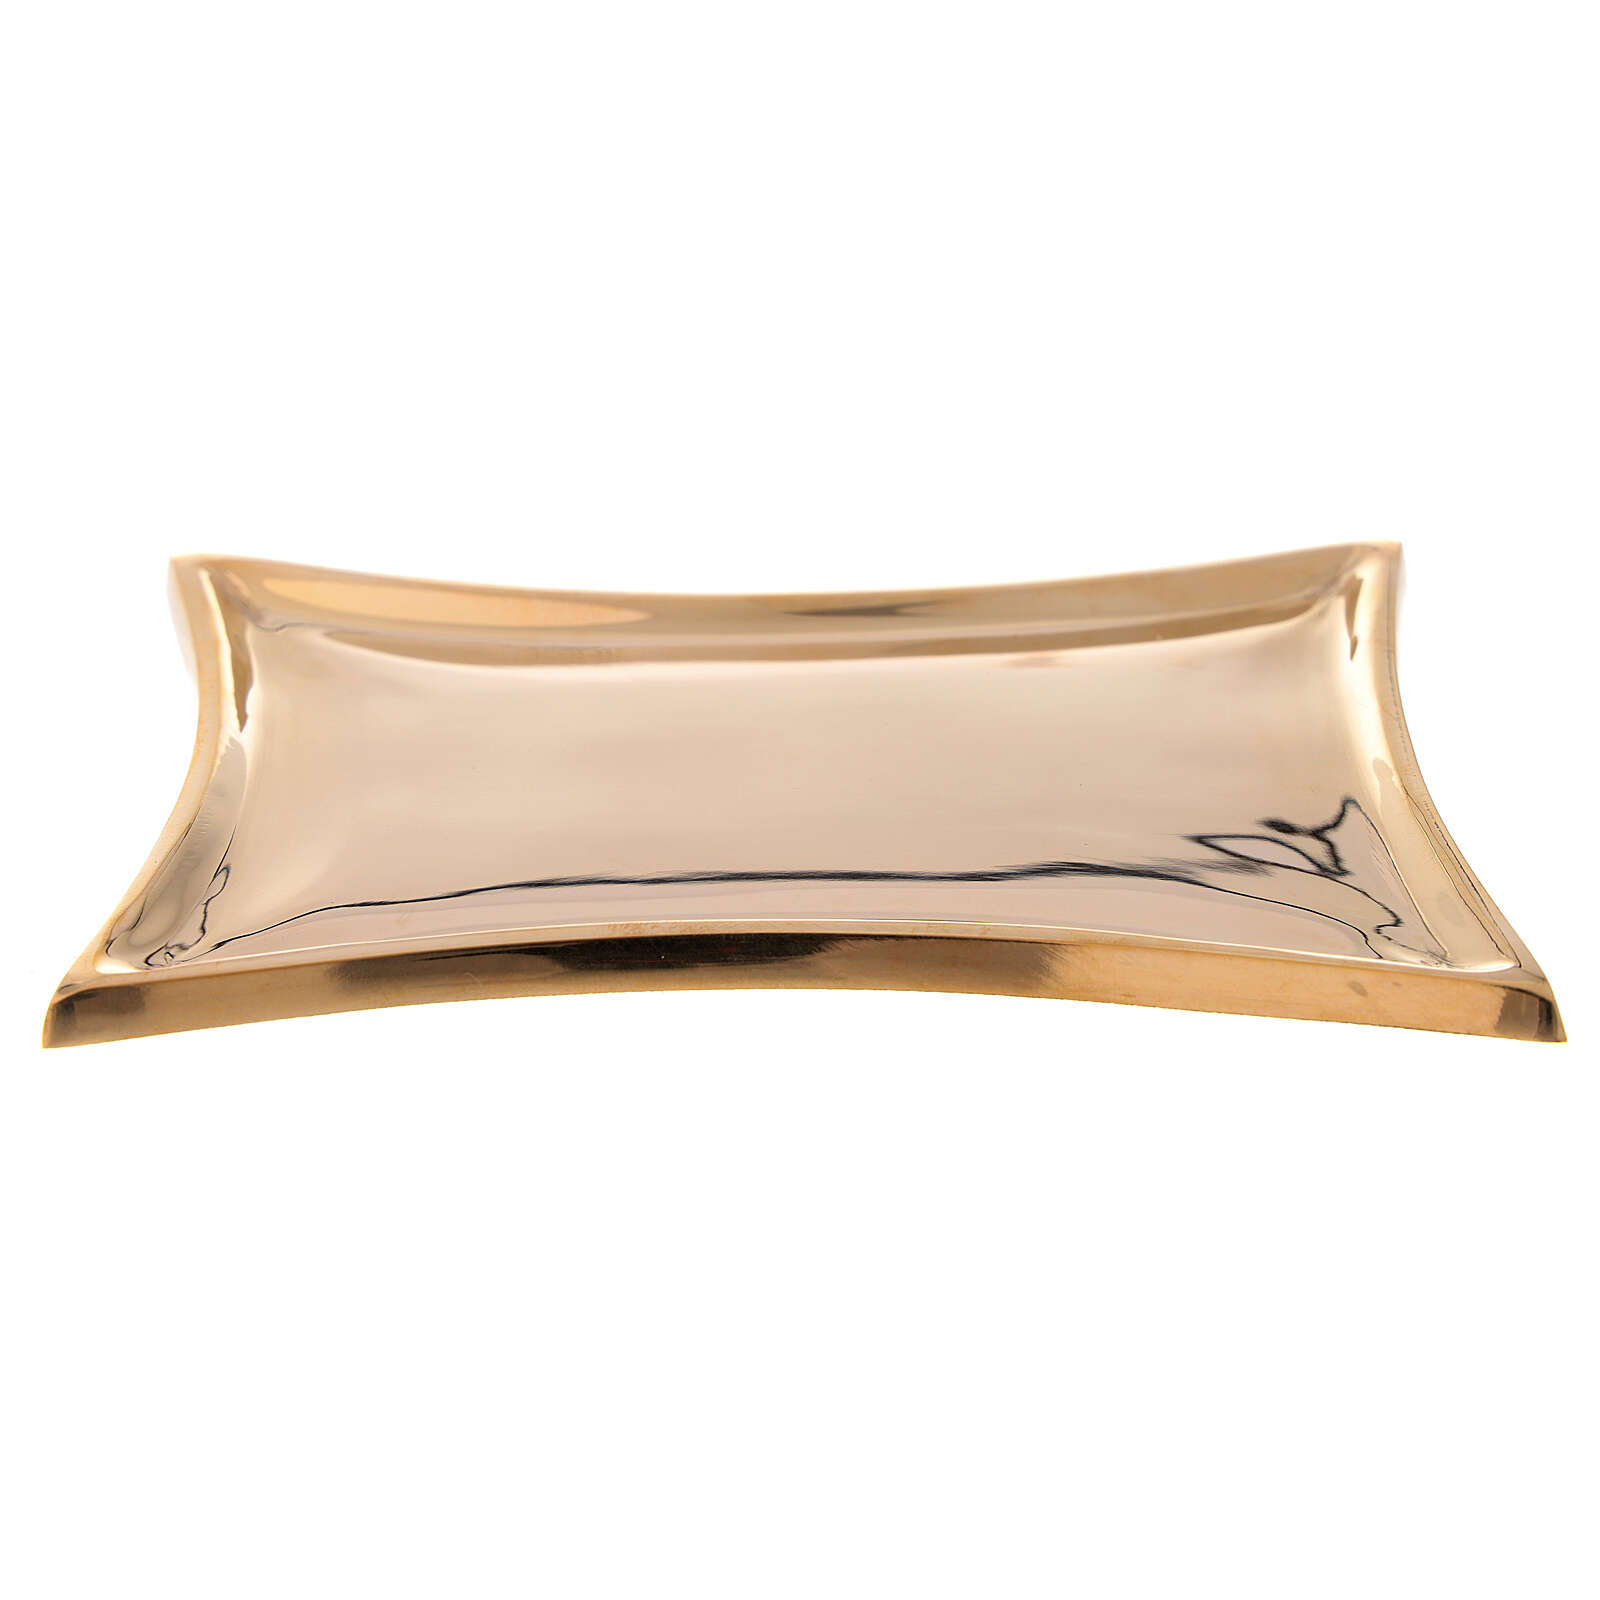 Well plate in gold plated polished brass 3